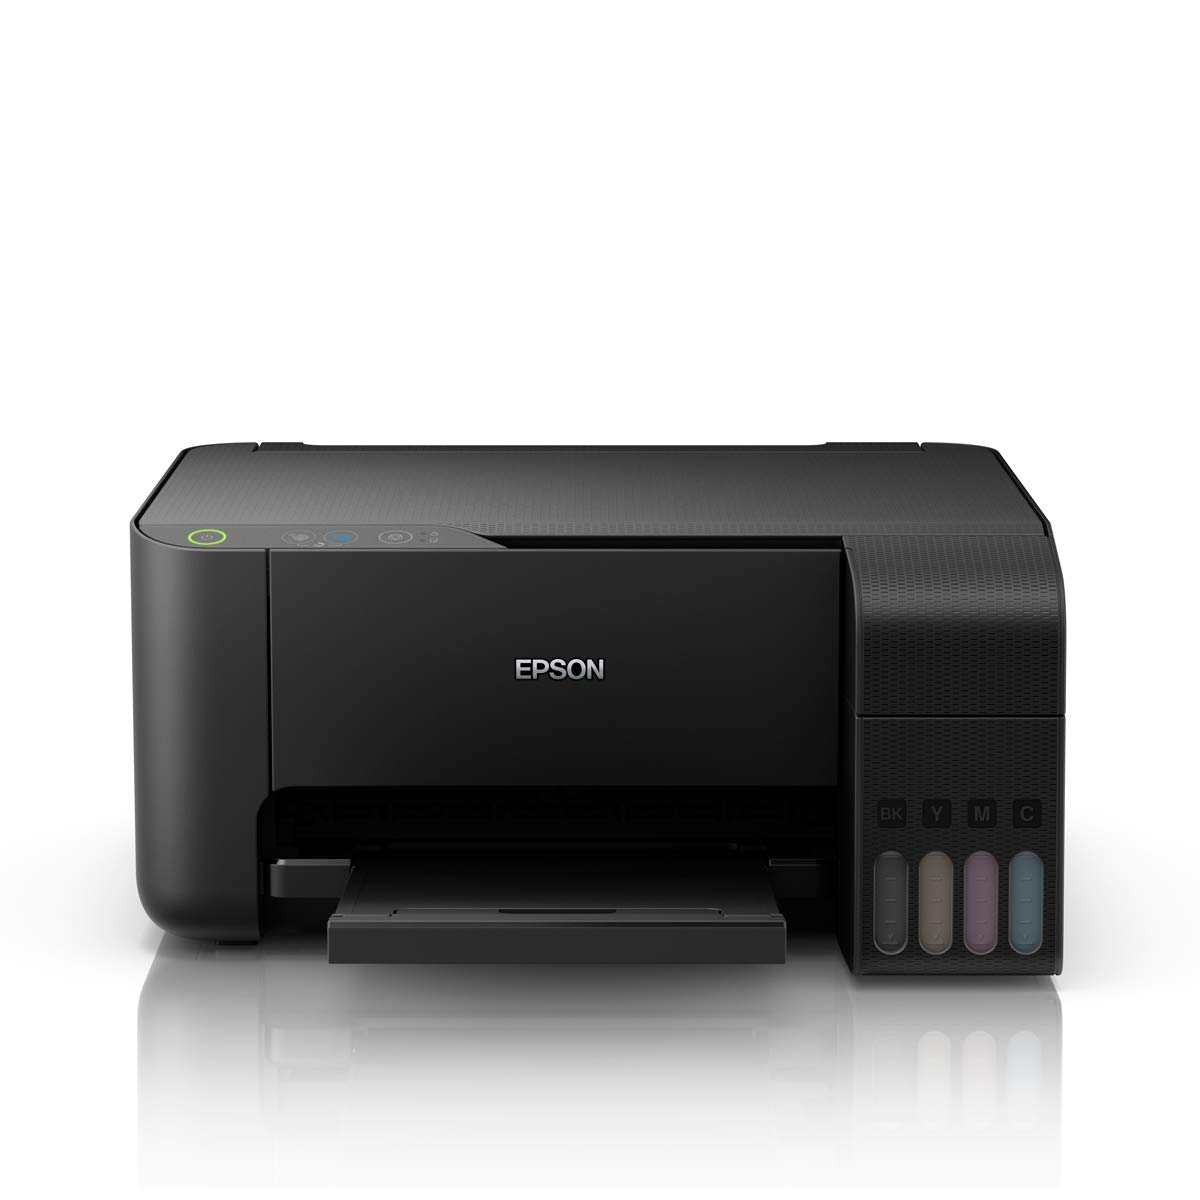 Epson L3152 WiFi All in One Ink Tank Printer Image